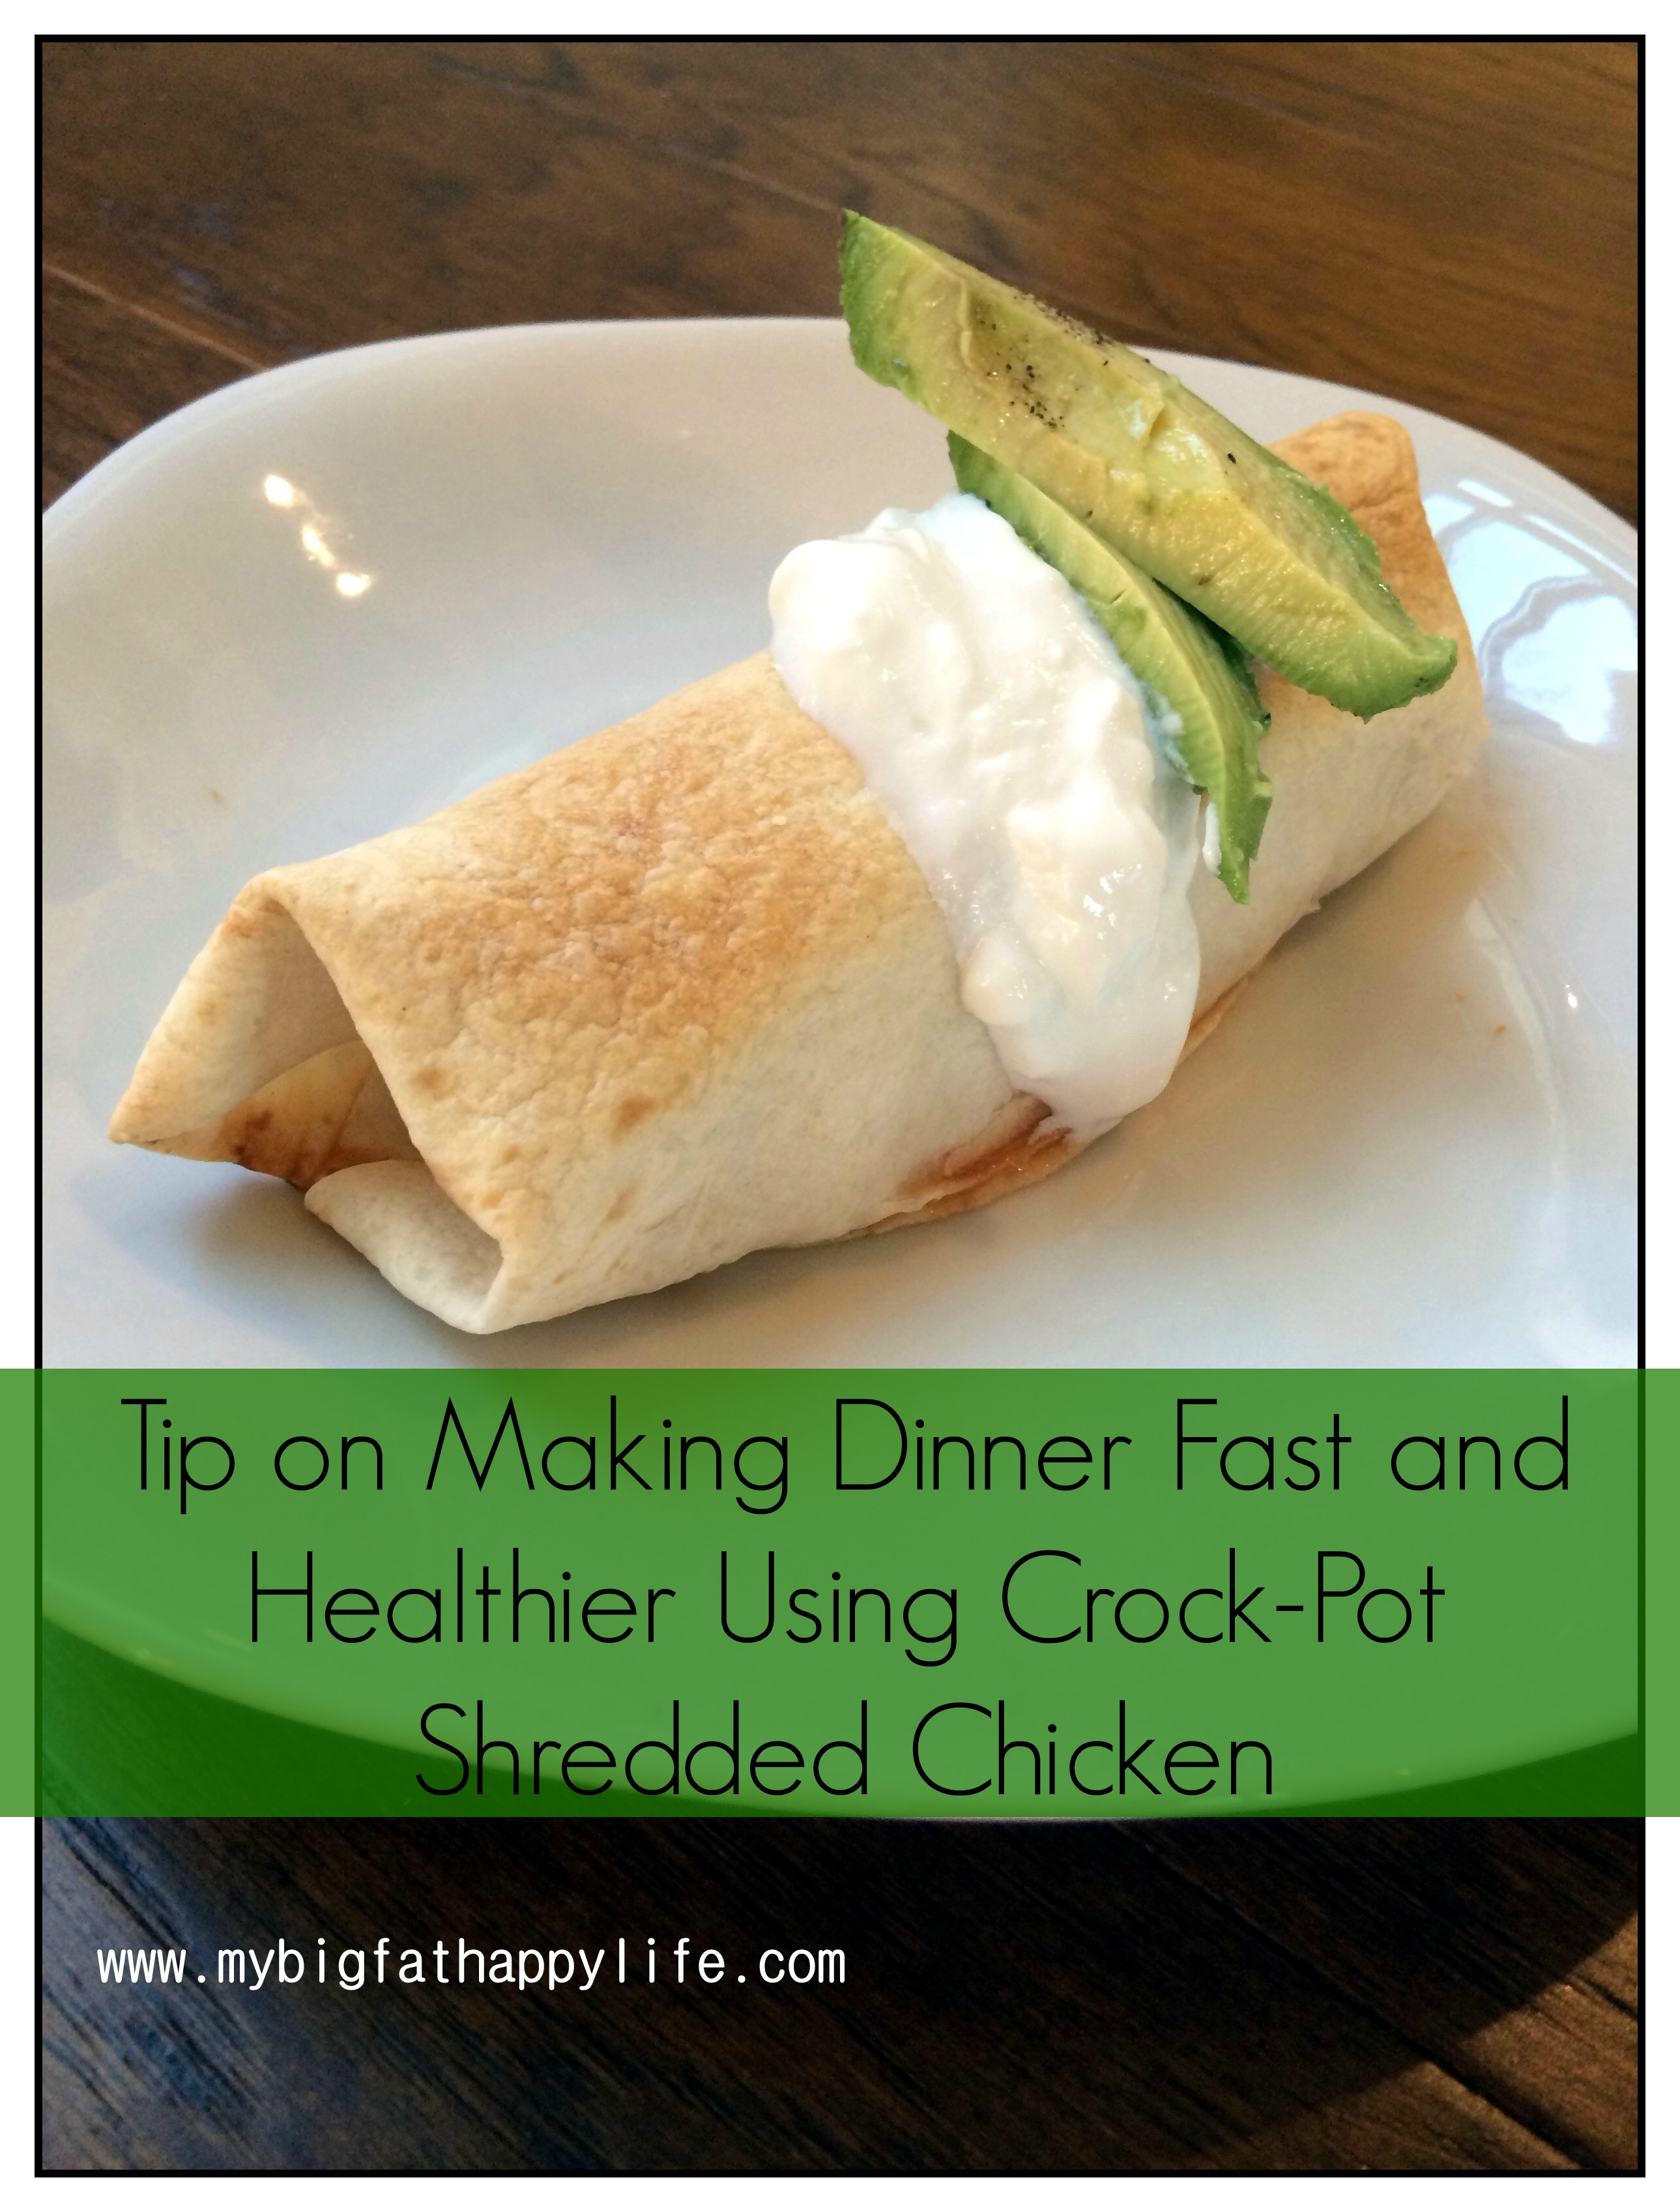 How to make quick healthy dinners: Shredded Chicken in the Crock-pot